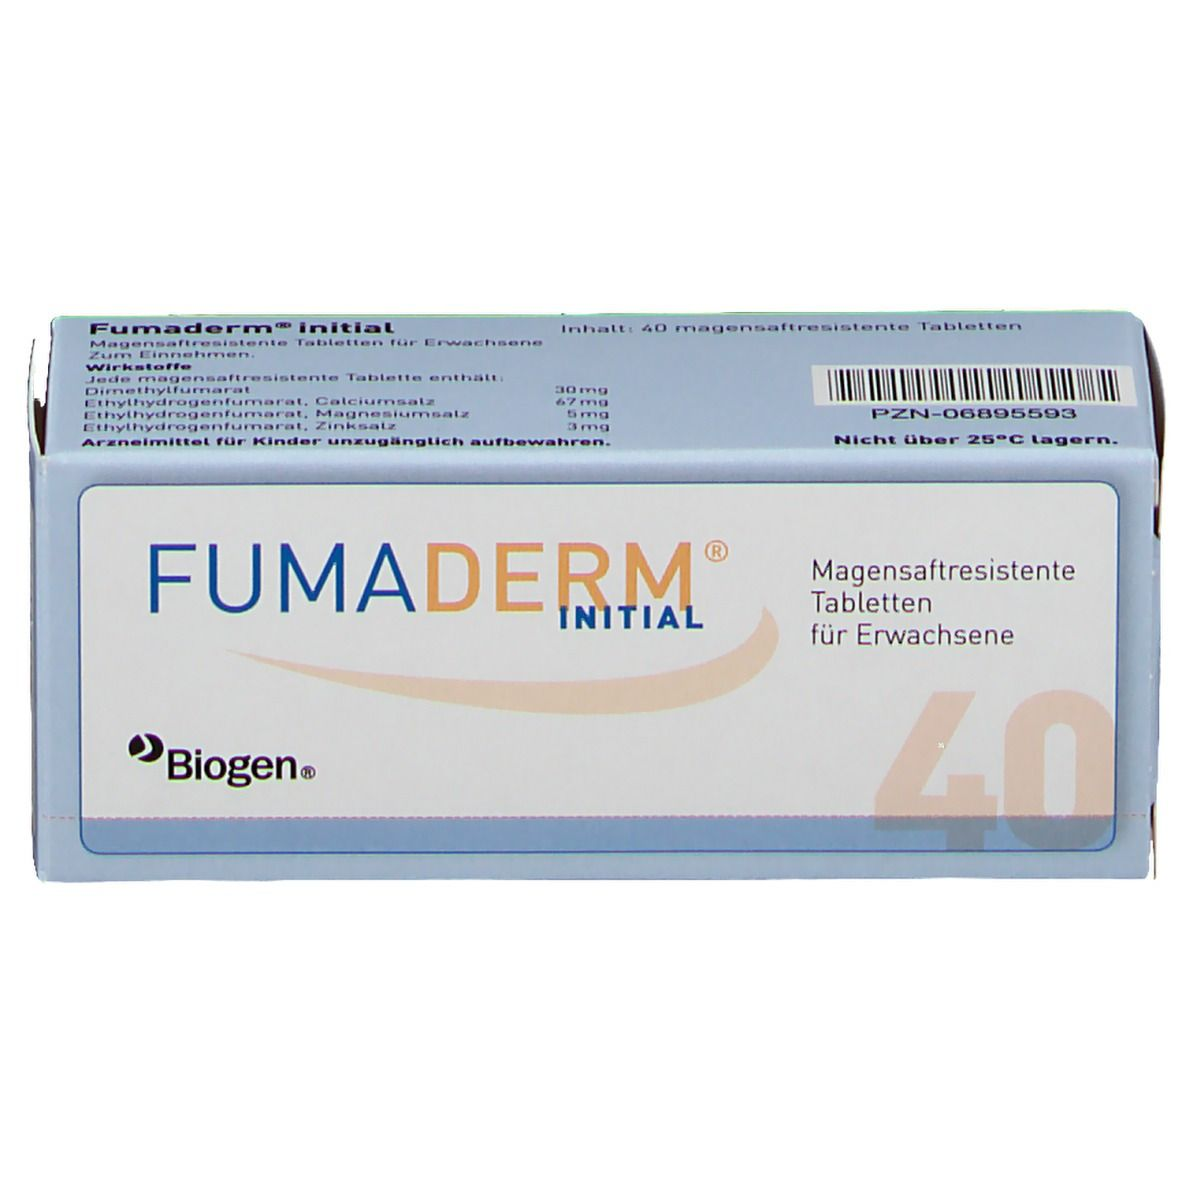 Fumaderm initial